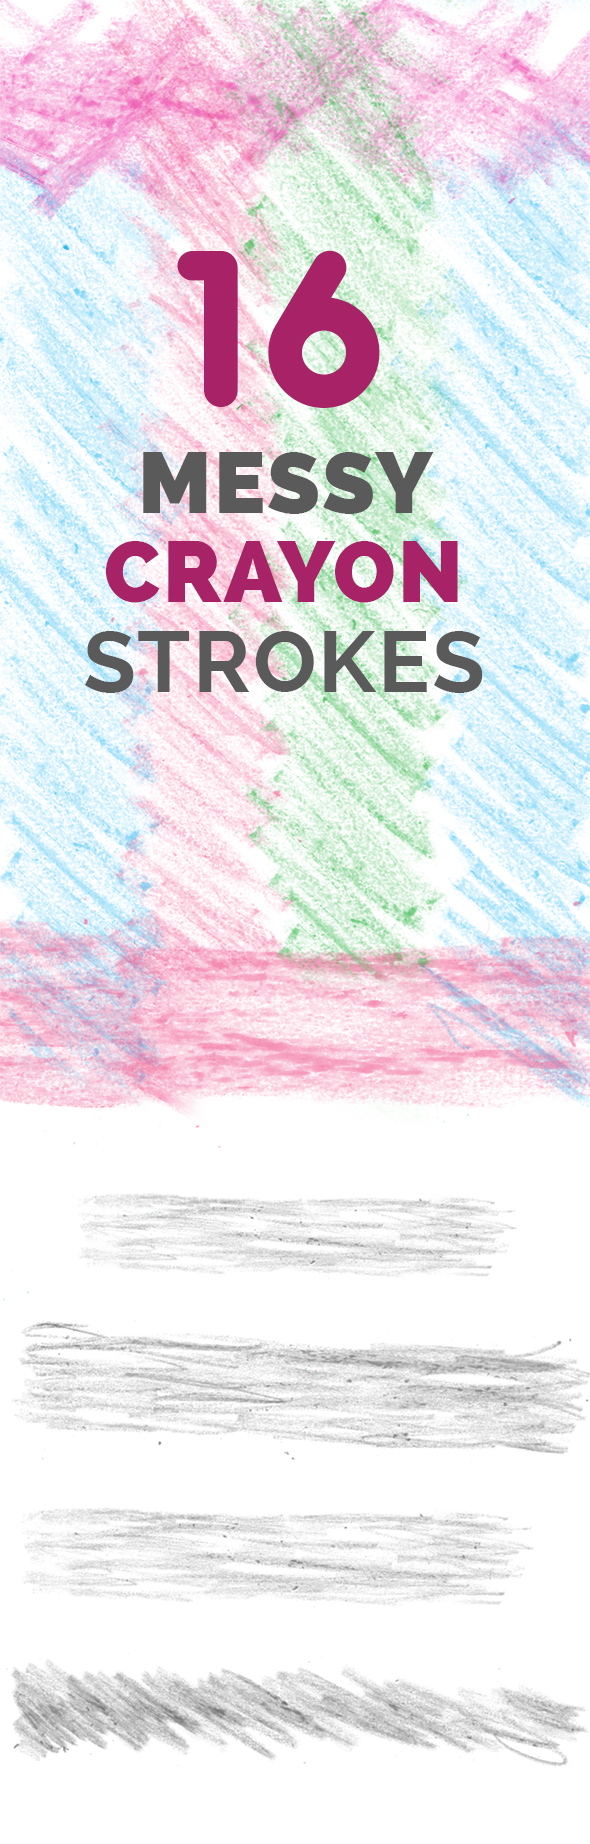 16 Messy Crayon Strokes - Brushes Photoshop